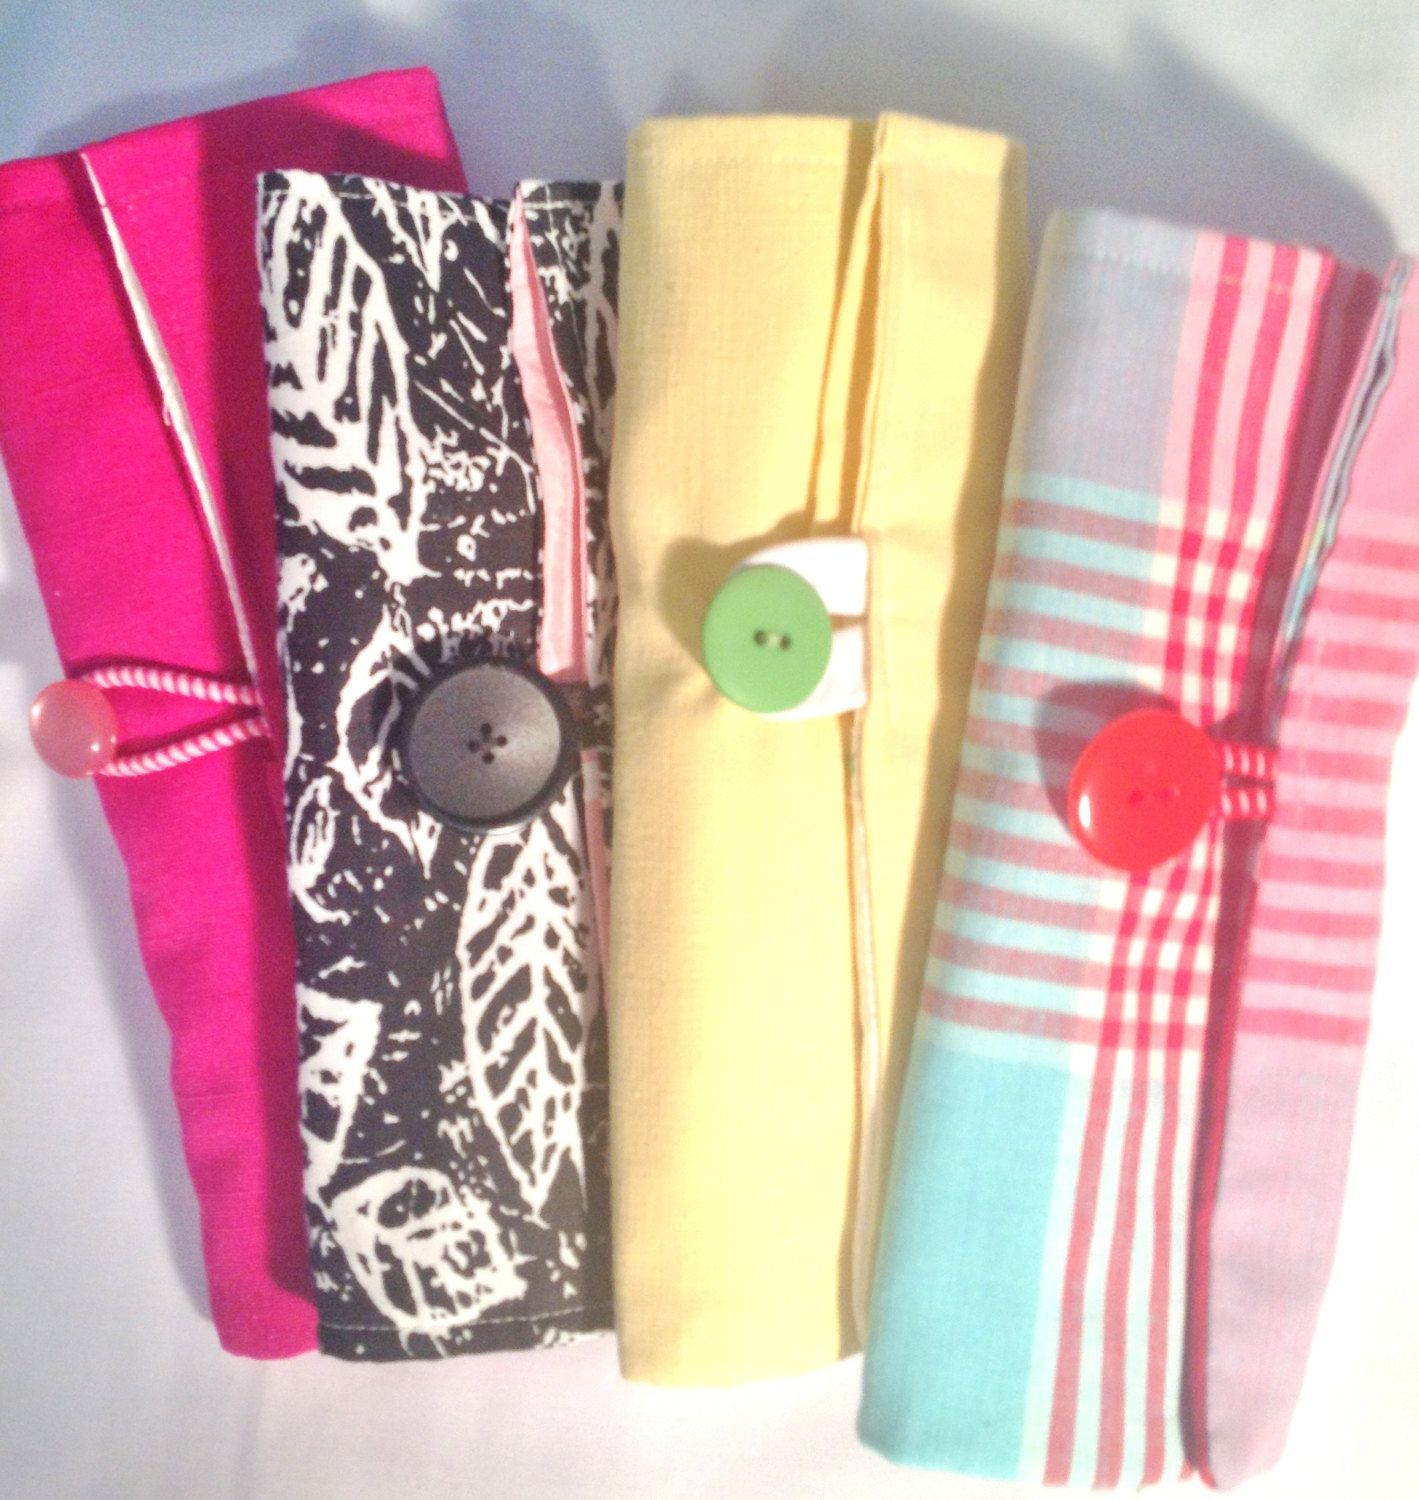 Make-up Brush Roll Up Organizer Pattern and Tutorial Digital Download by belairevillage on Etsy